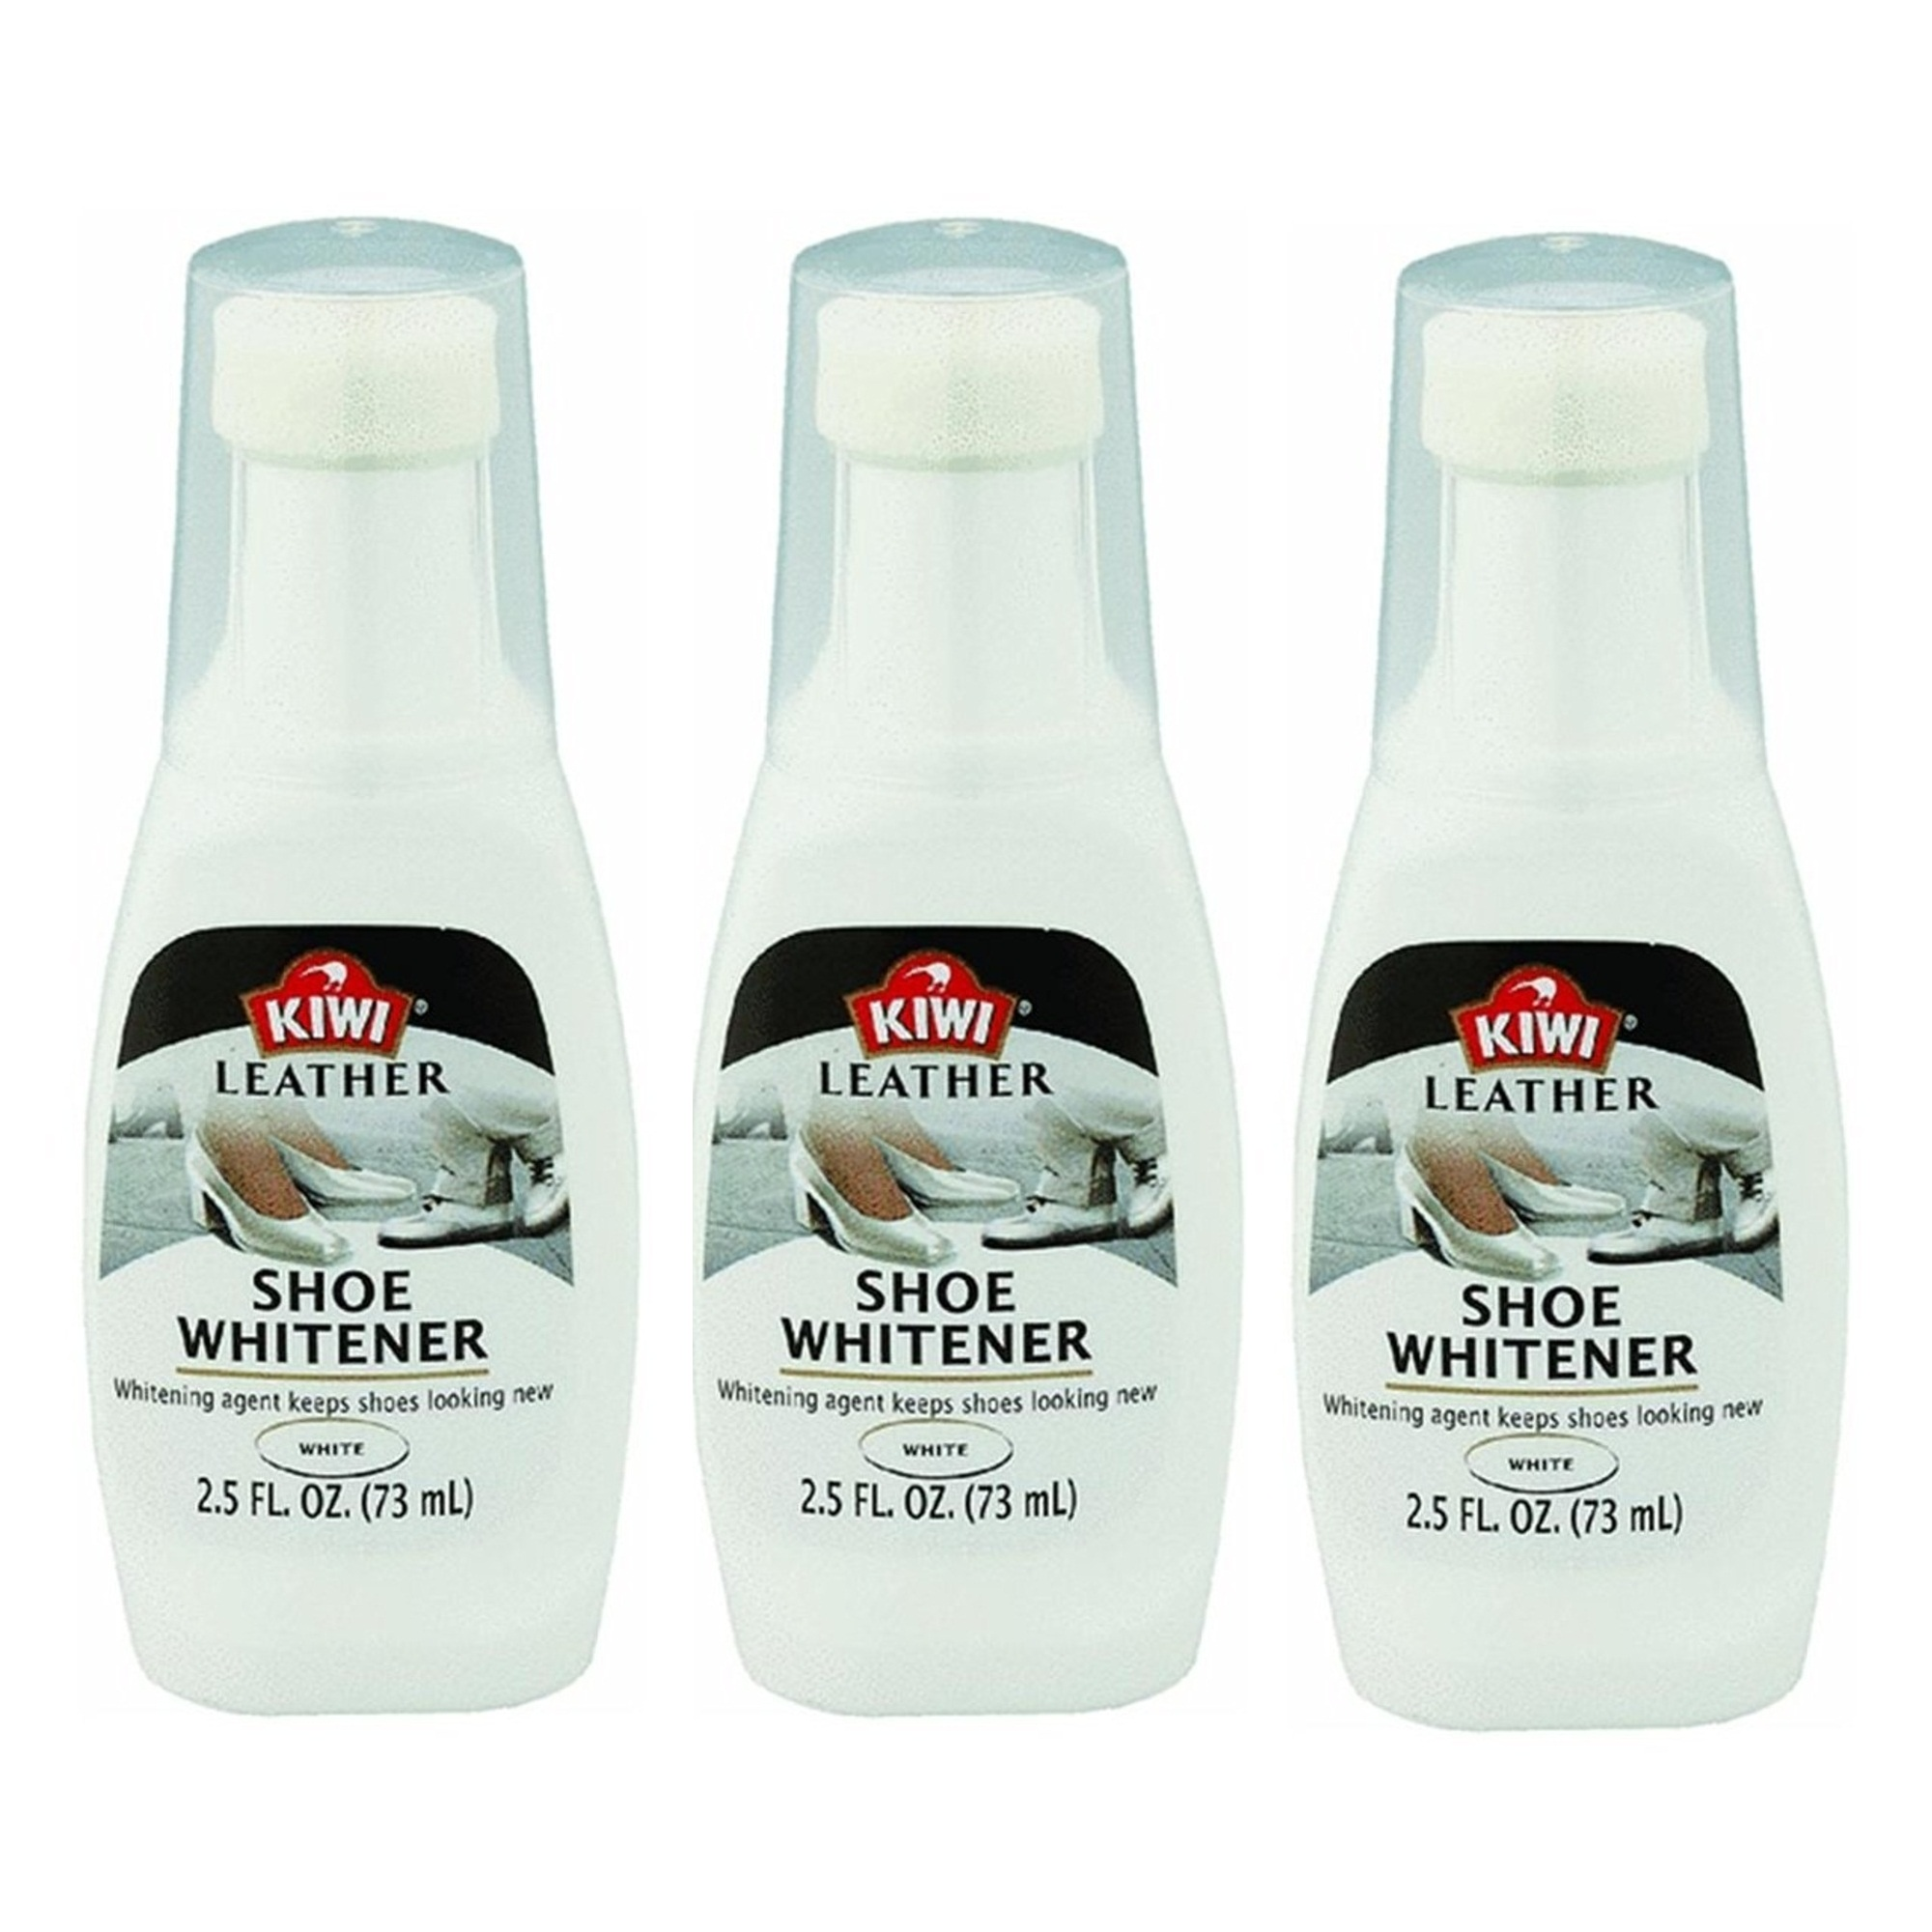 kiwi leather shoe whitener white 2 5 oz pack of 3 ebay